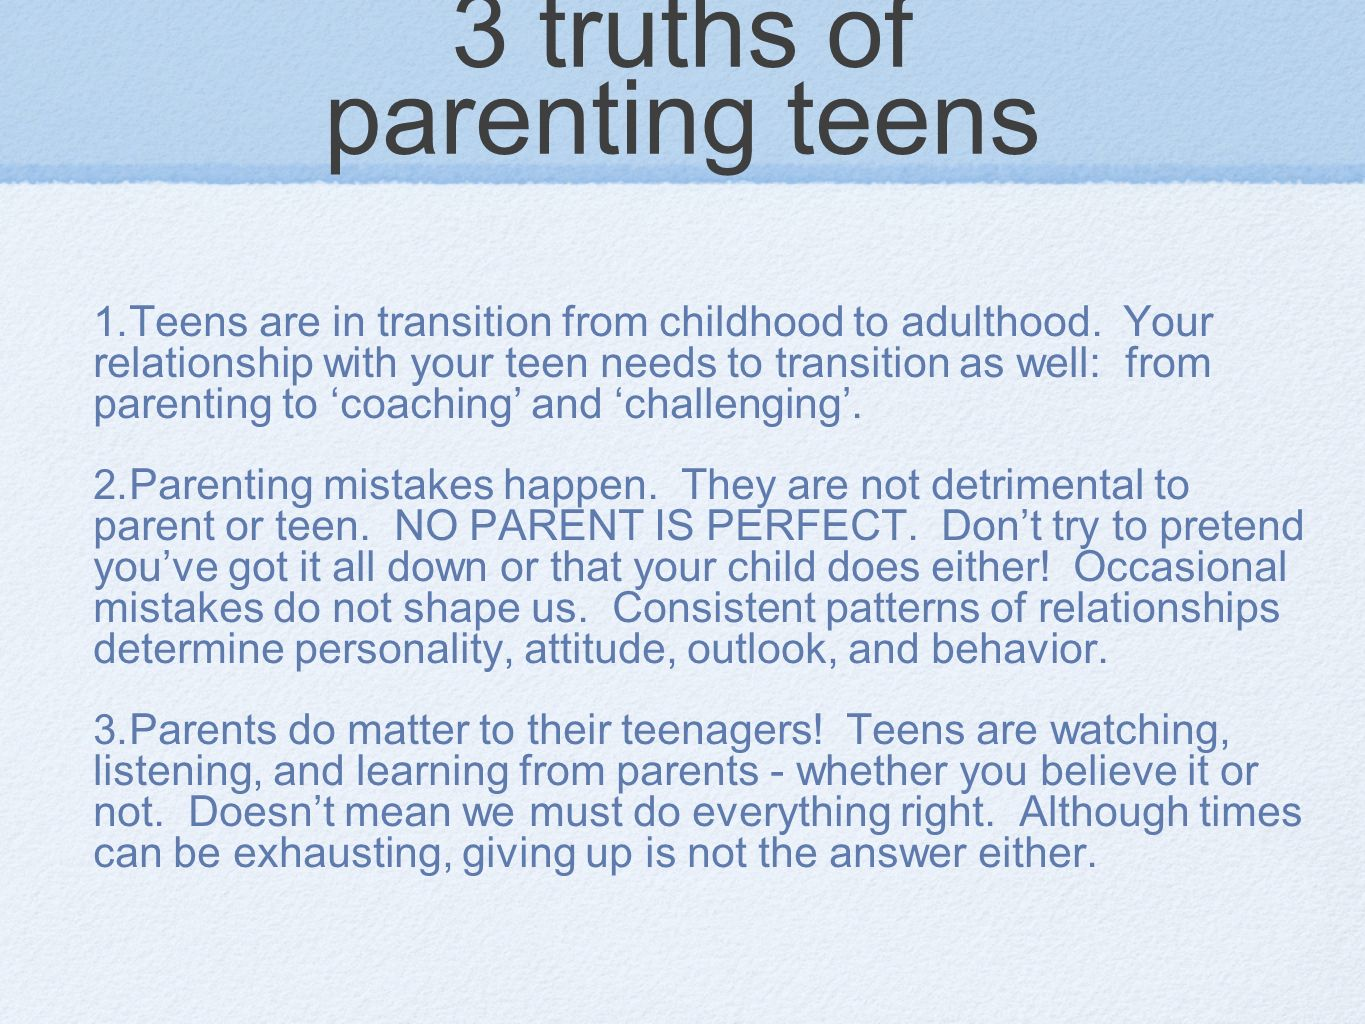 best way to ruin your teen Parent your teen as if he or she is a child...